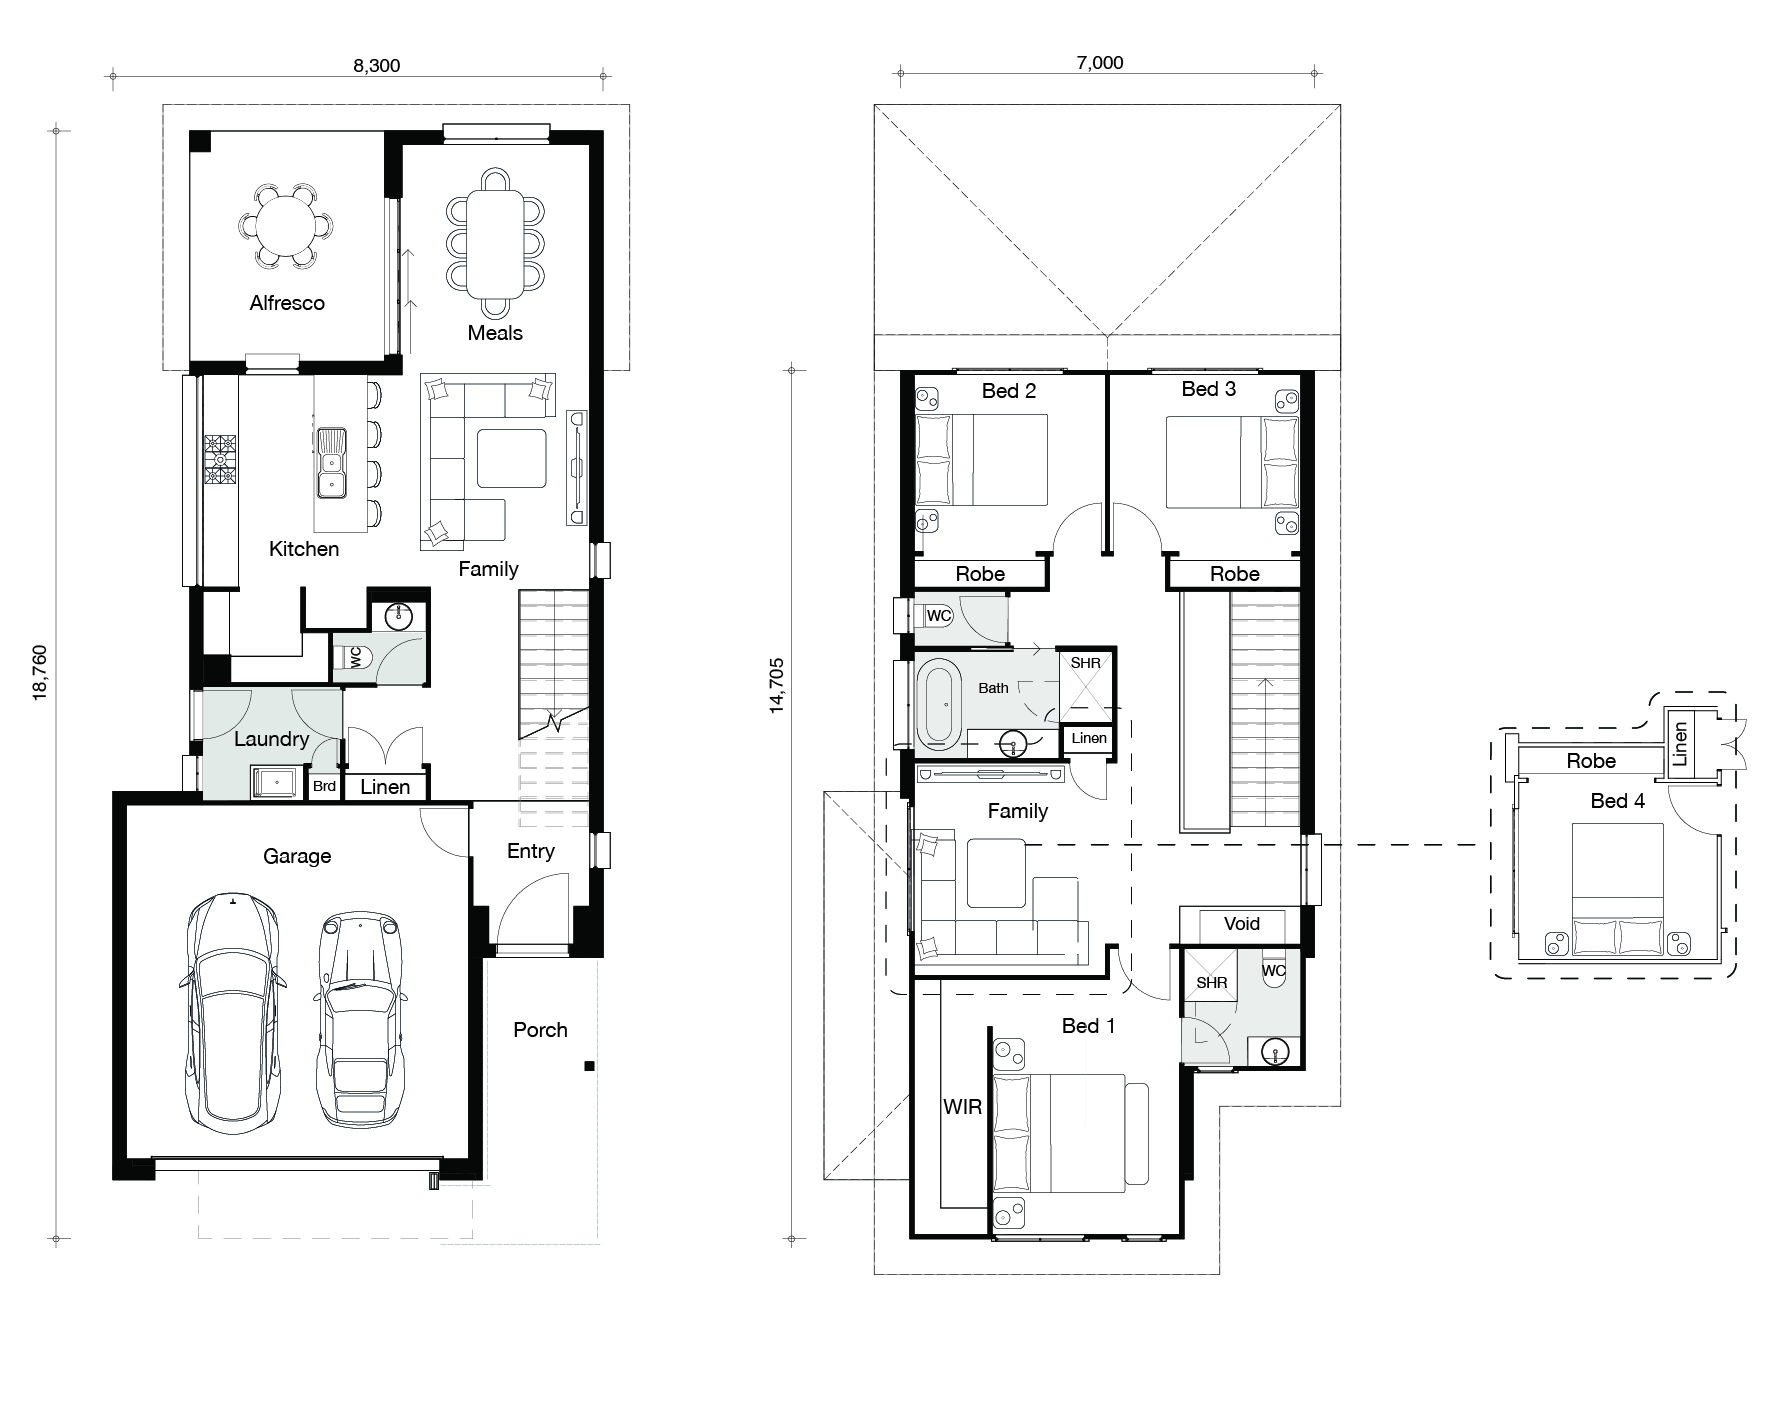 Floor plan for Milan home